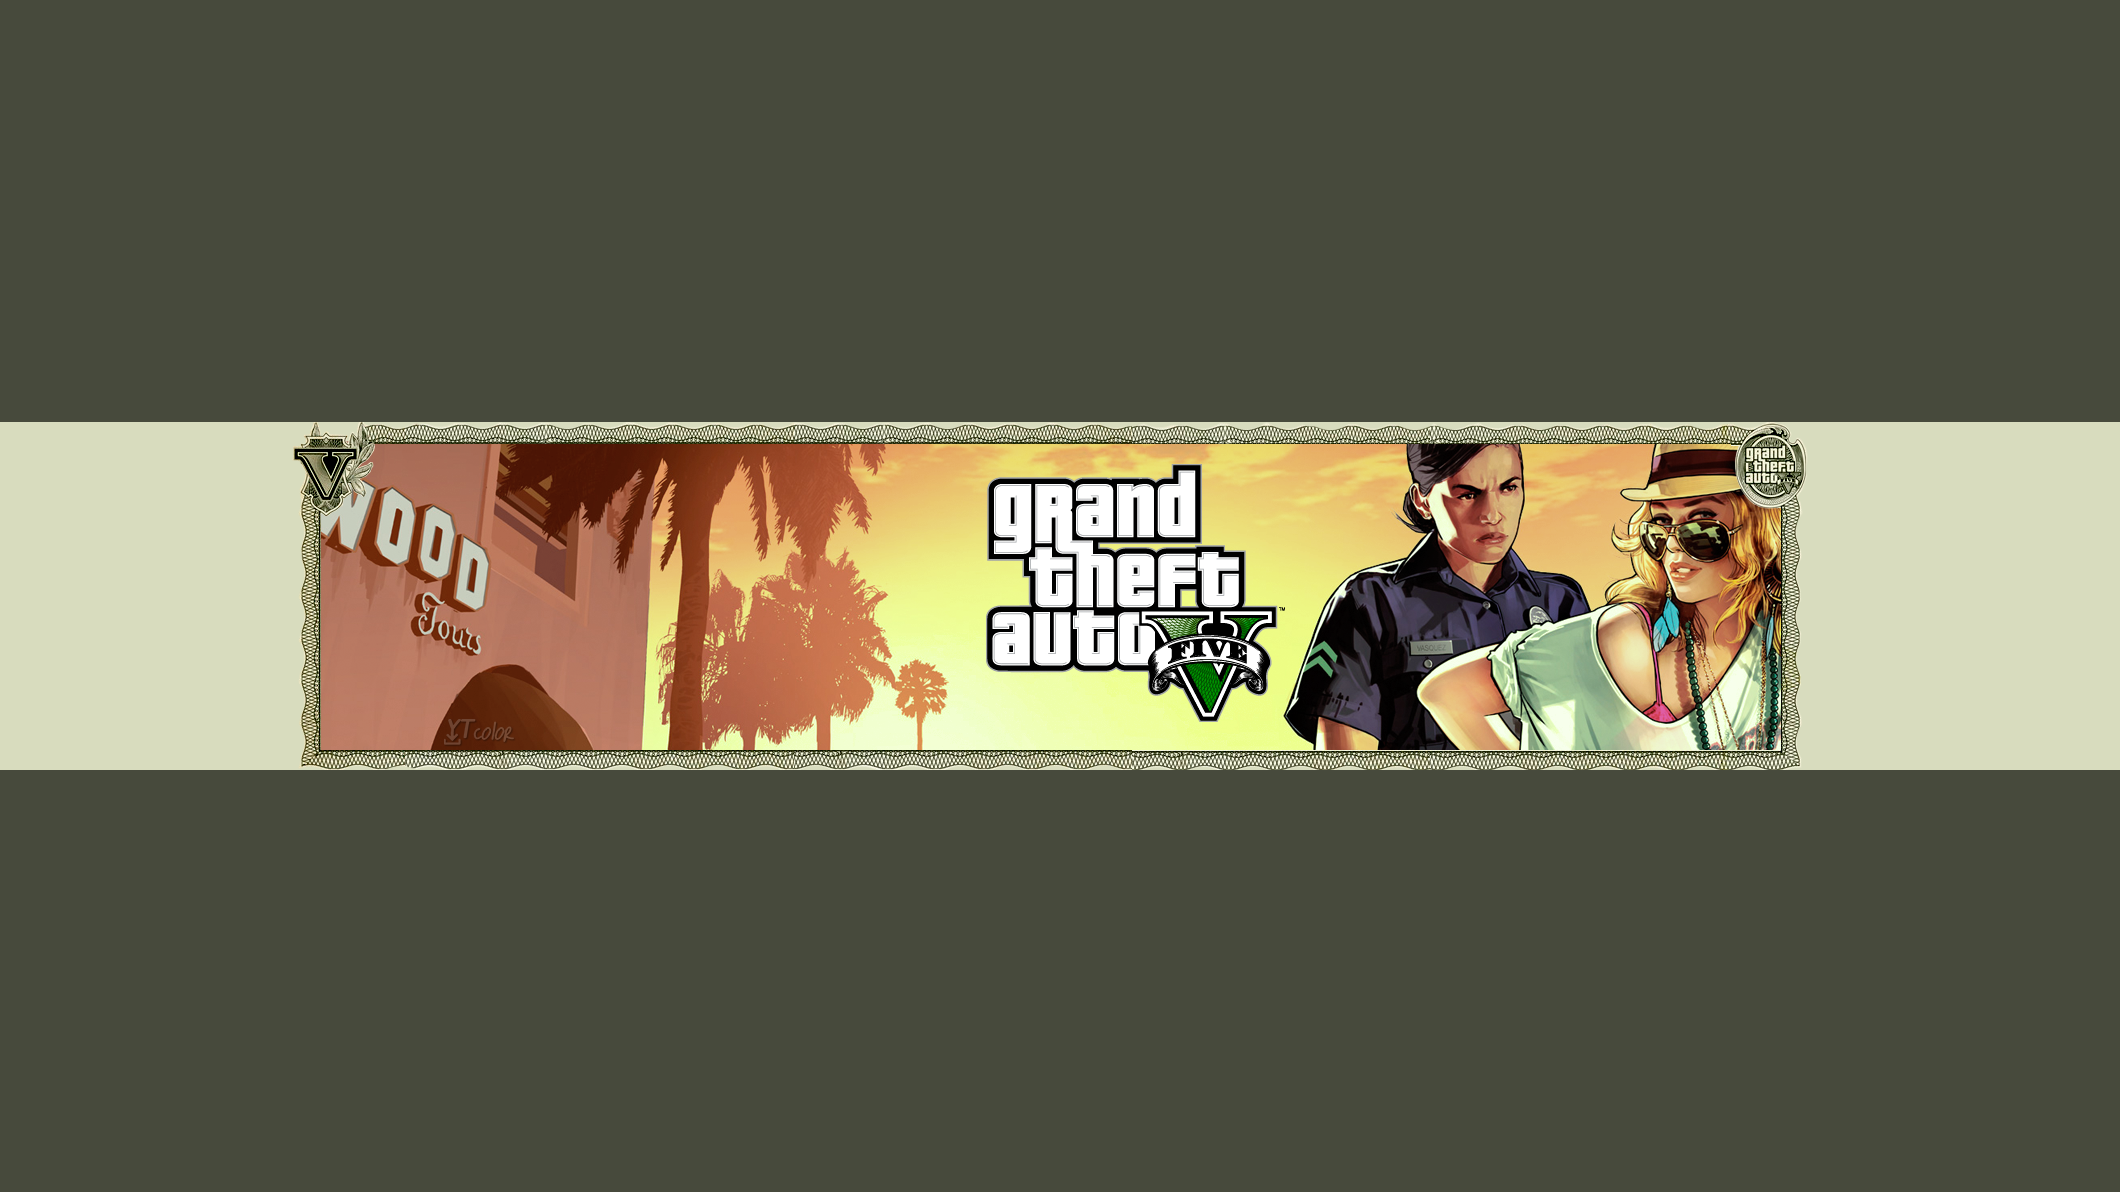 http://ytcolor.ru/wp-content/uploads/2014/11/gta5.png